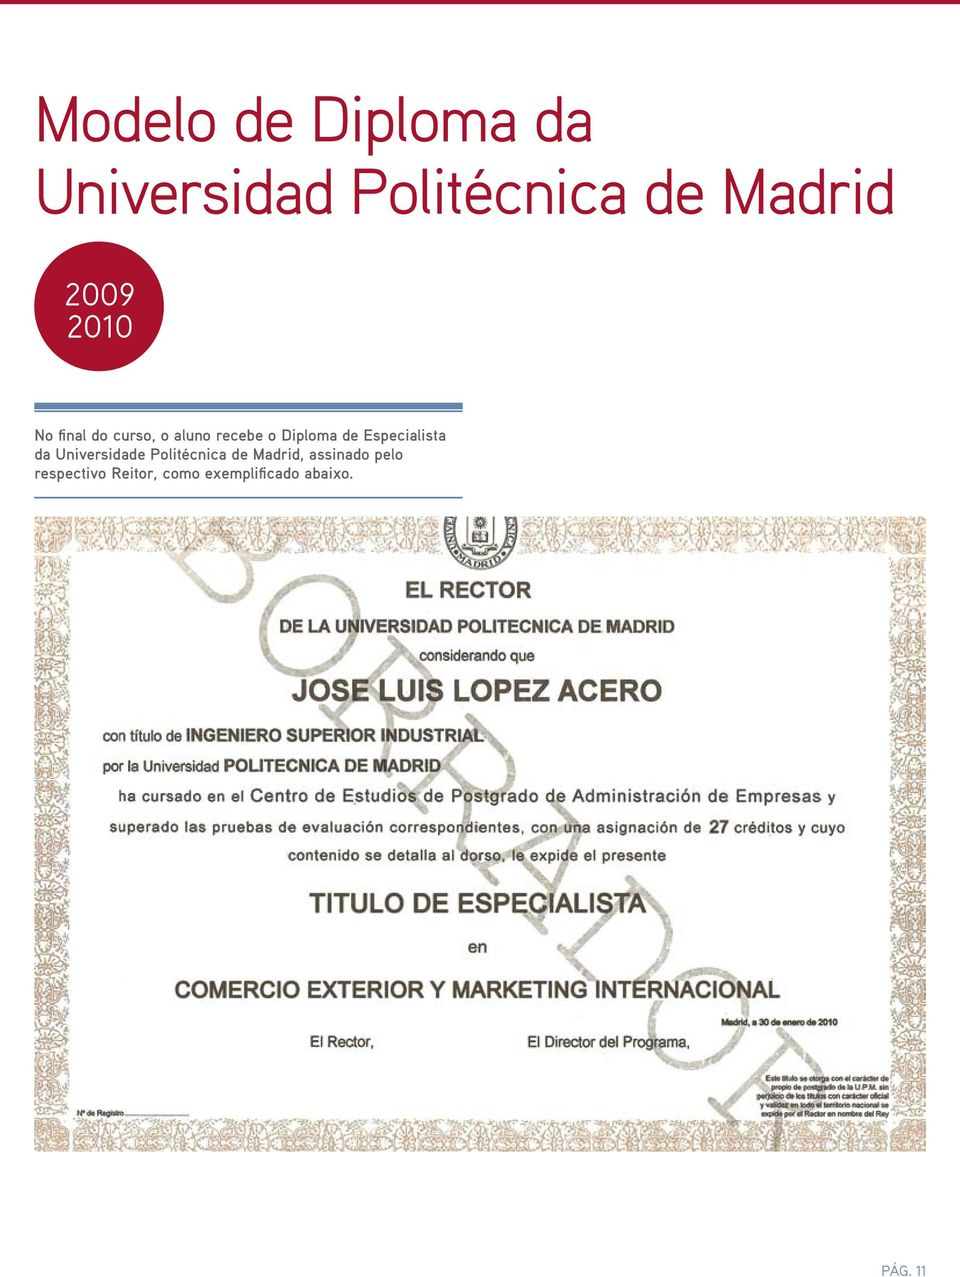 Especialista da Universidade Politécnica de Madrid,